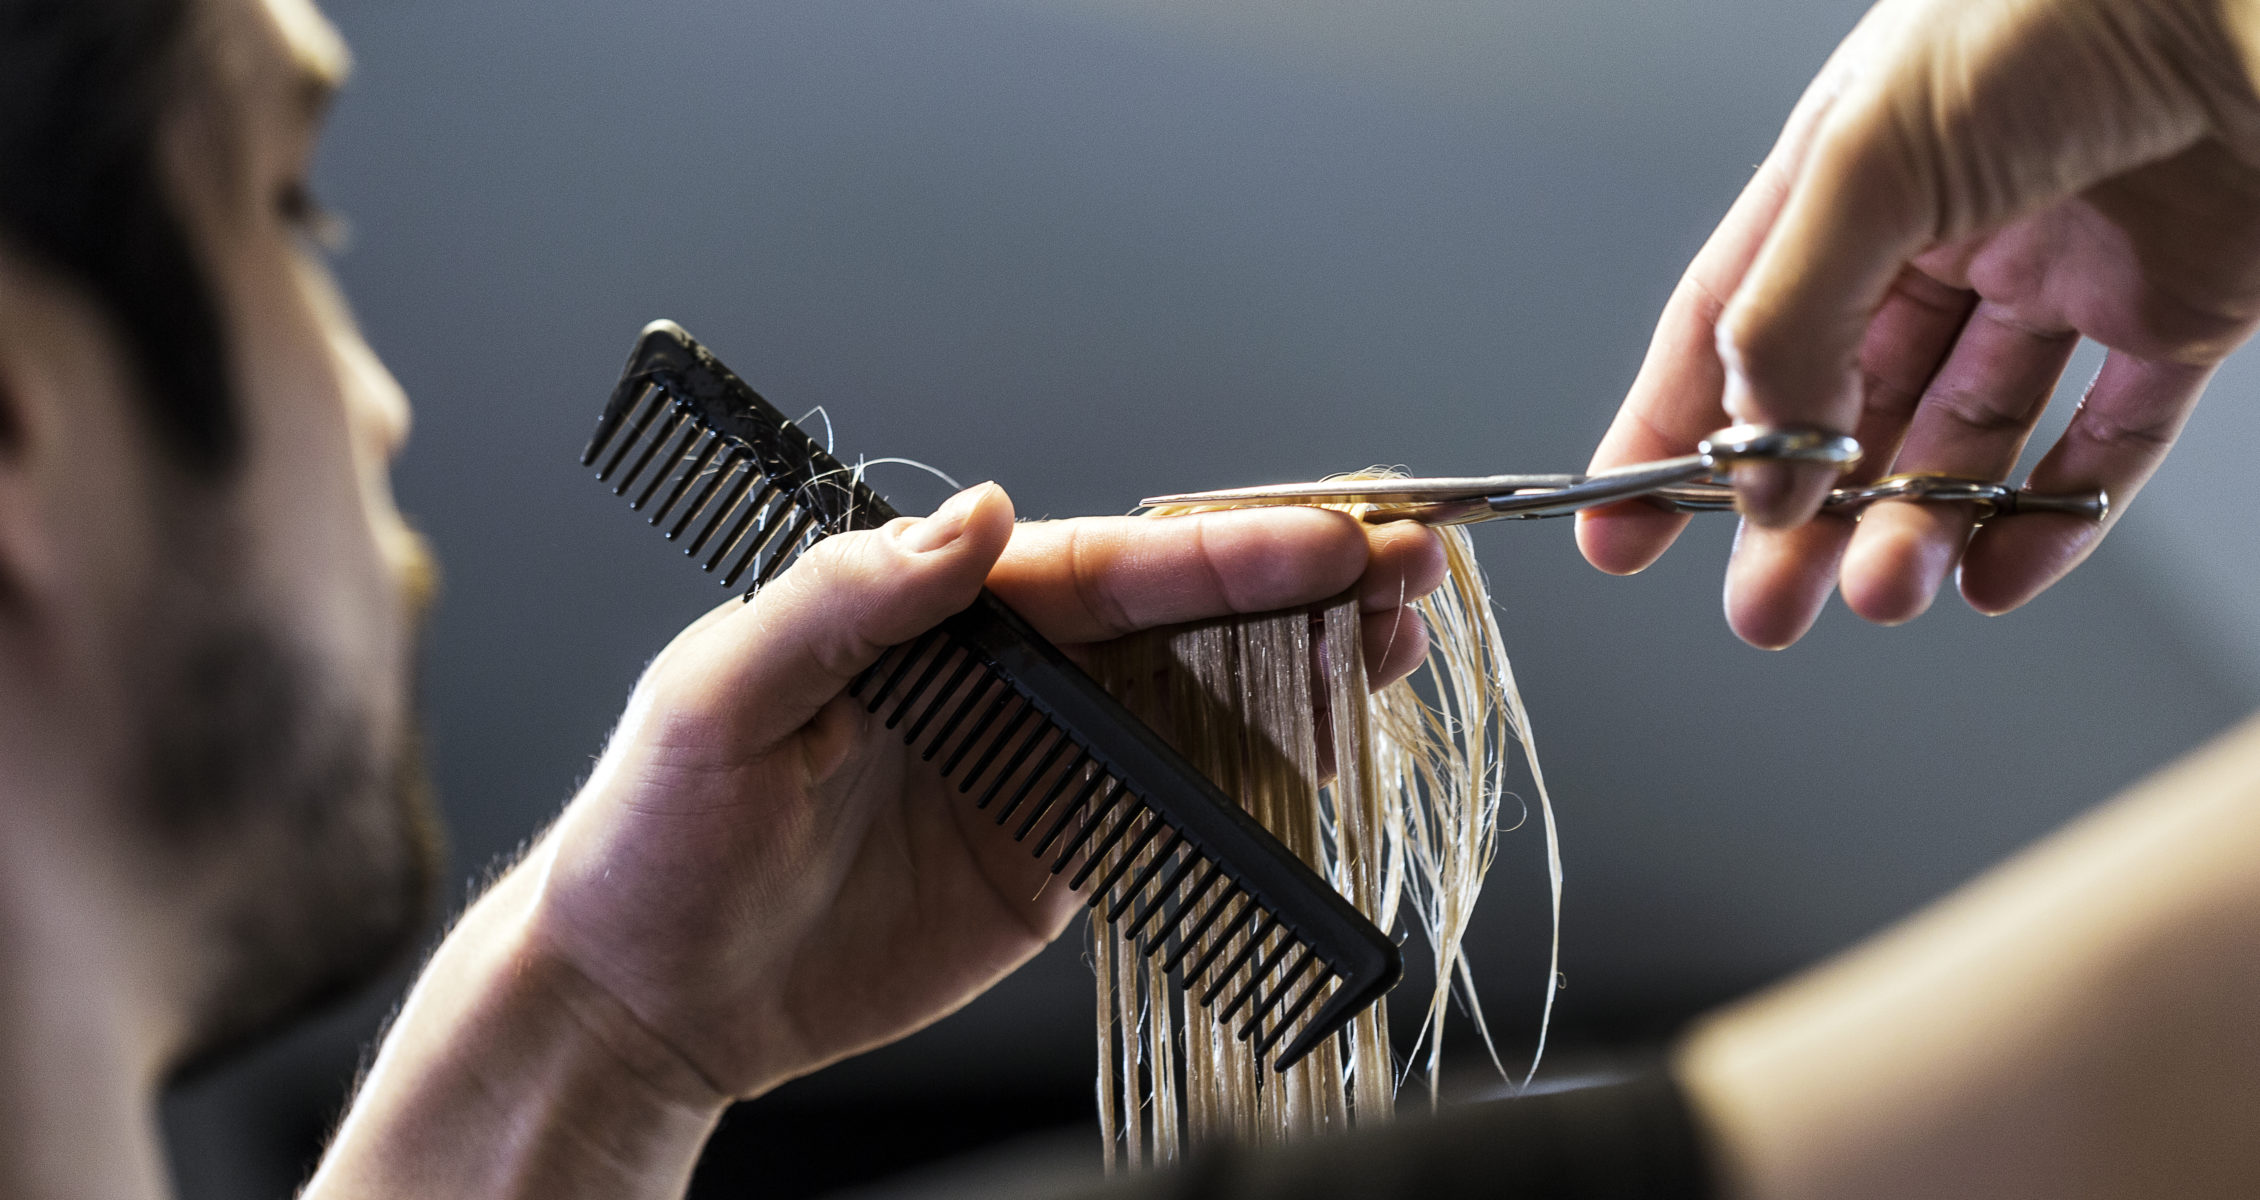 Stylist cutting a client's hair with scissors and a comb